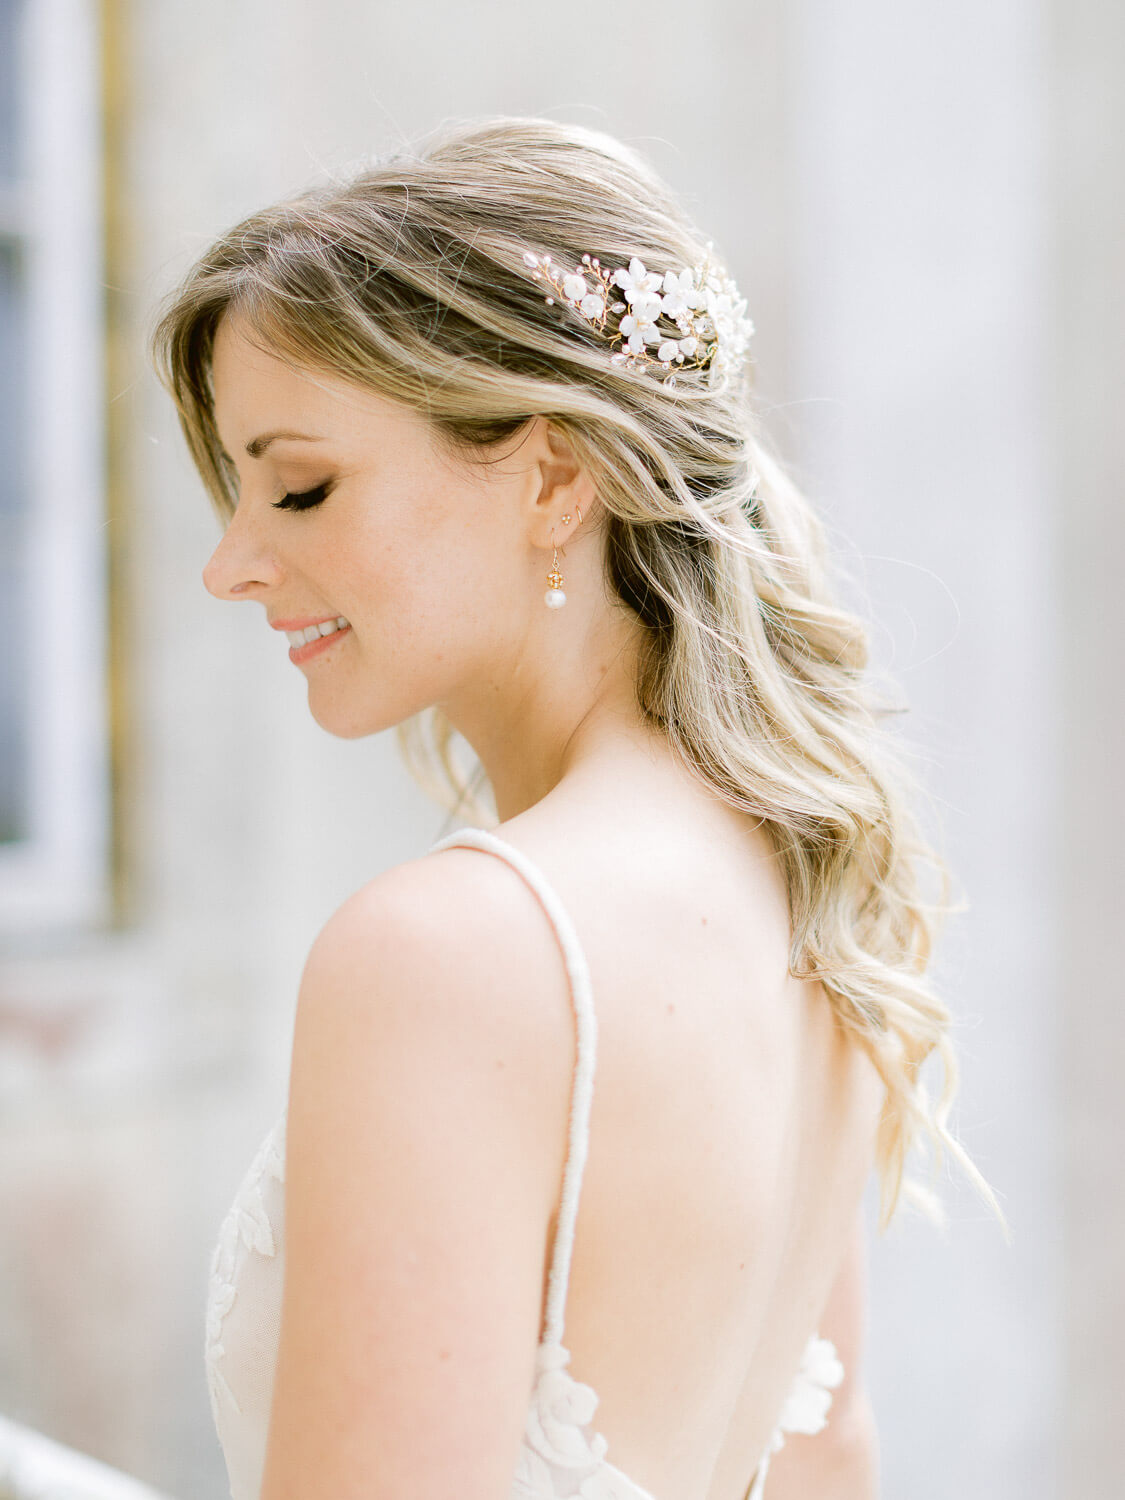 bide's hair-piece and hairdo details in a destination wedding in Portugal by Portugal Wedding Photographer